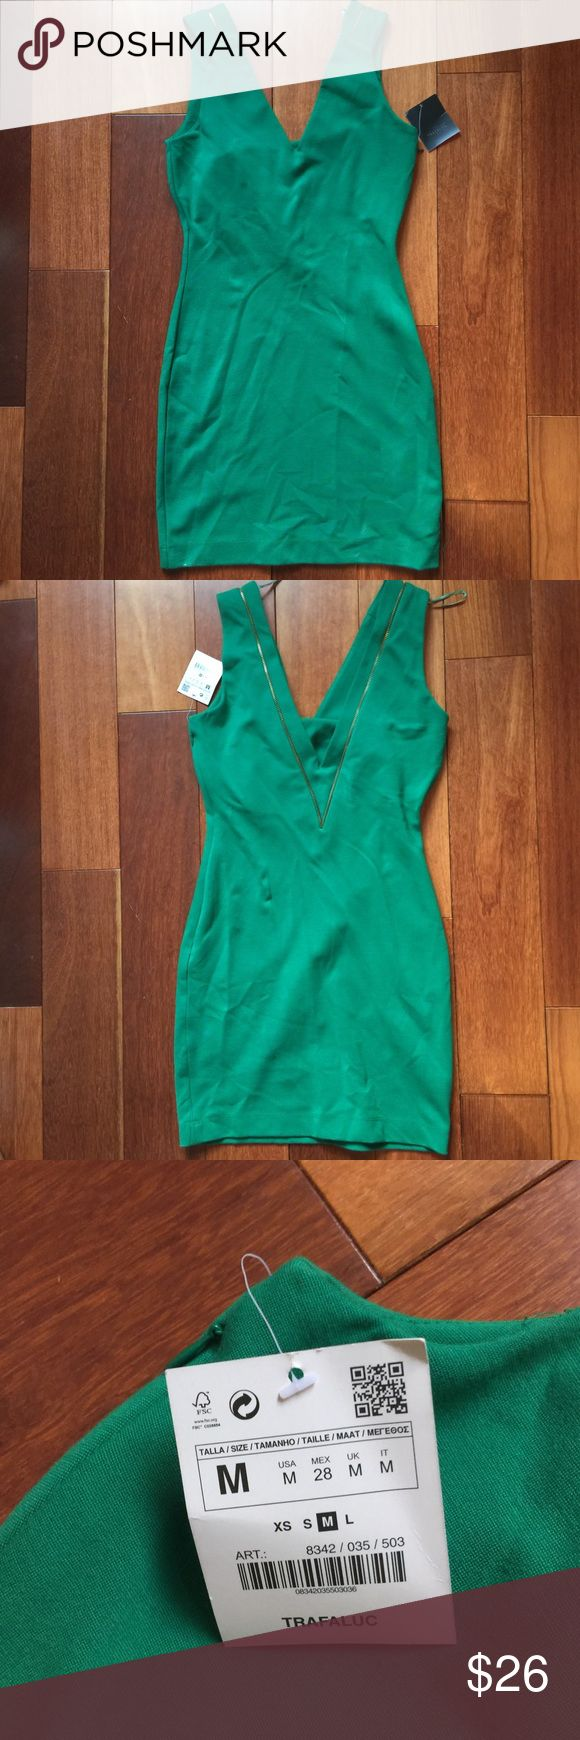 NWT Zara Trafaluc Green Bodycon V-Neck Dress NWT green bodycon dress from Zara Trafaluc. Has a v shape in the front and the back and adorable zipper detailing. Perfect for a night out, very flattering. Perfect condition, new with tags. No trades, from smoke and pet free home. Zara Dresses Mini